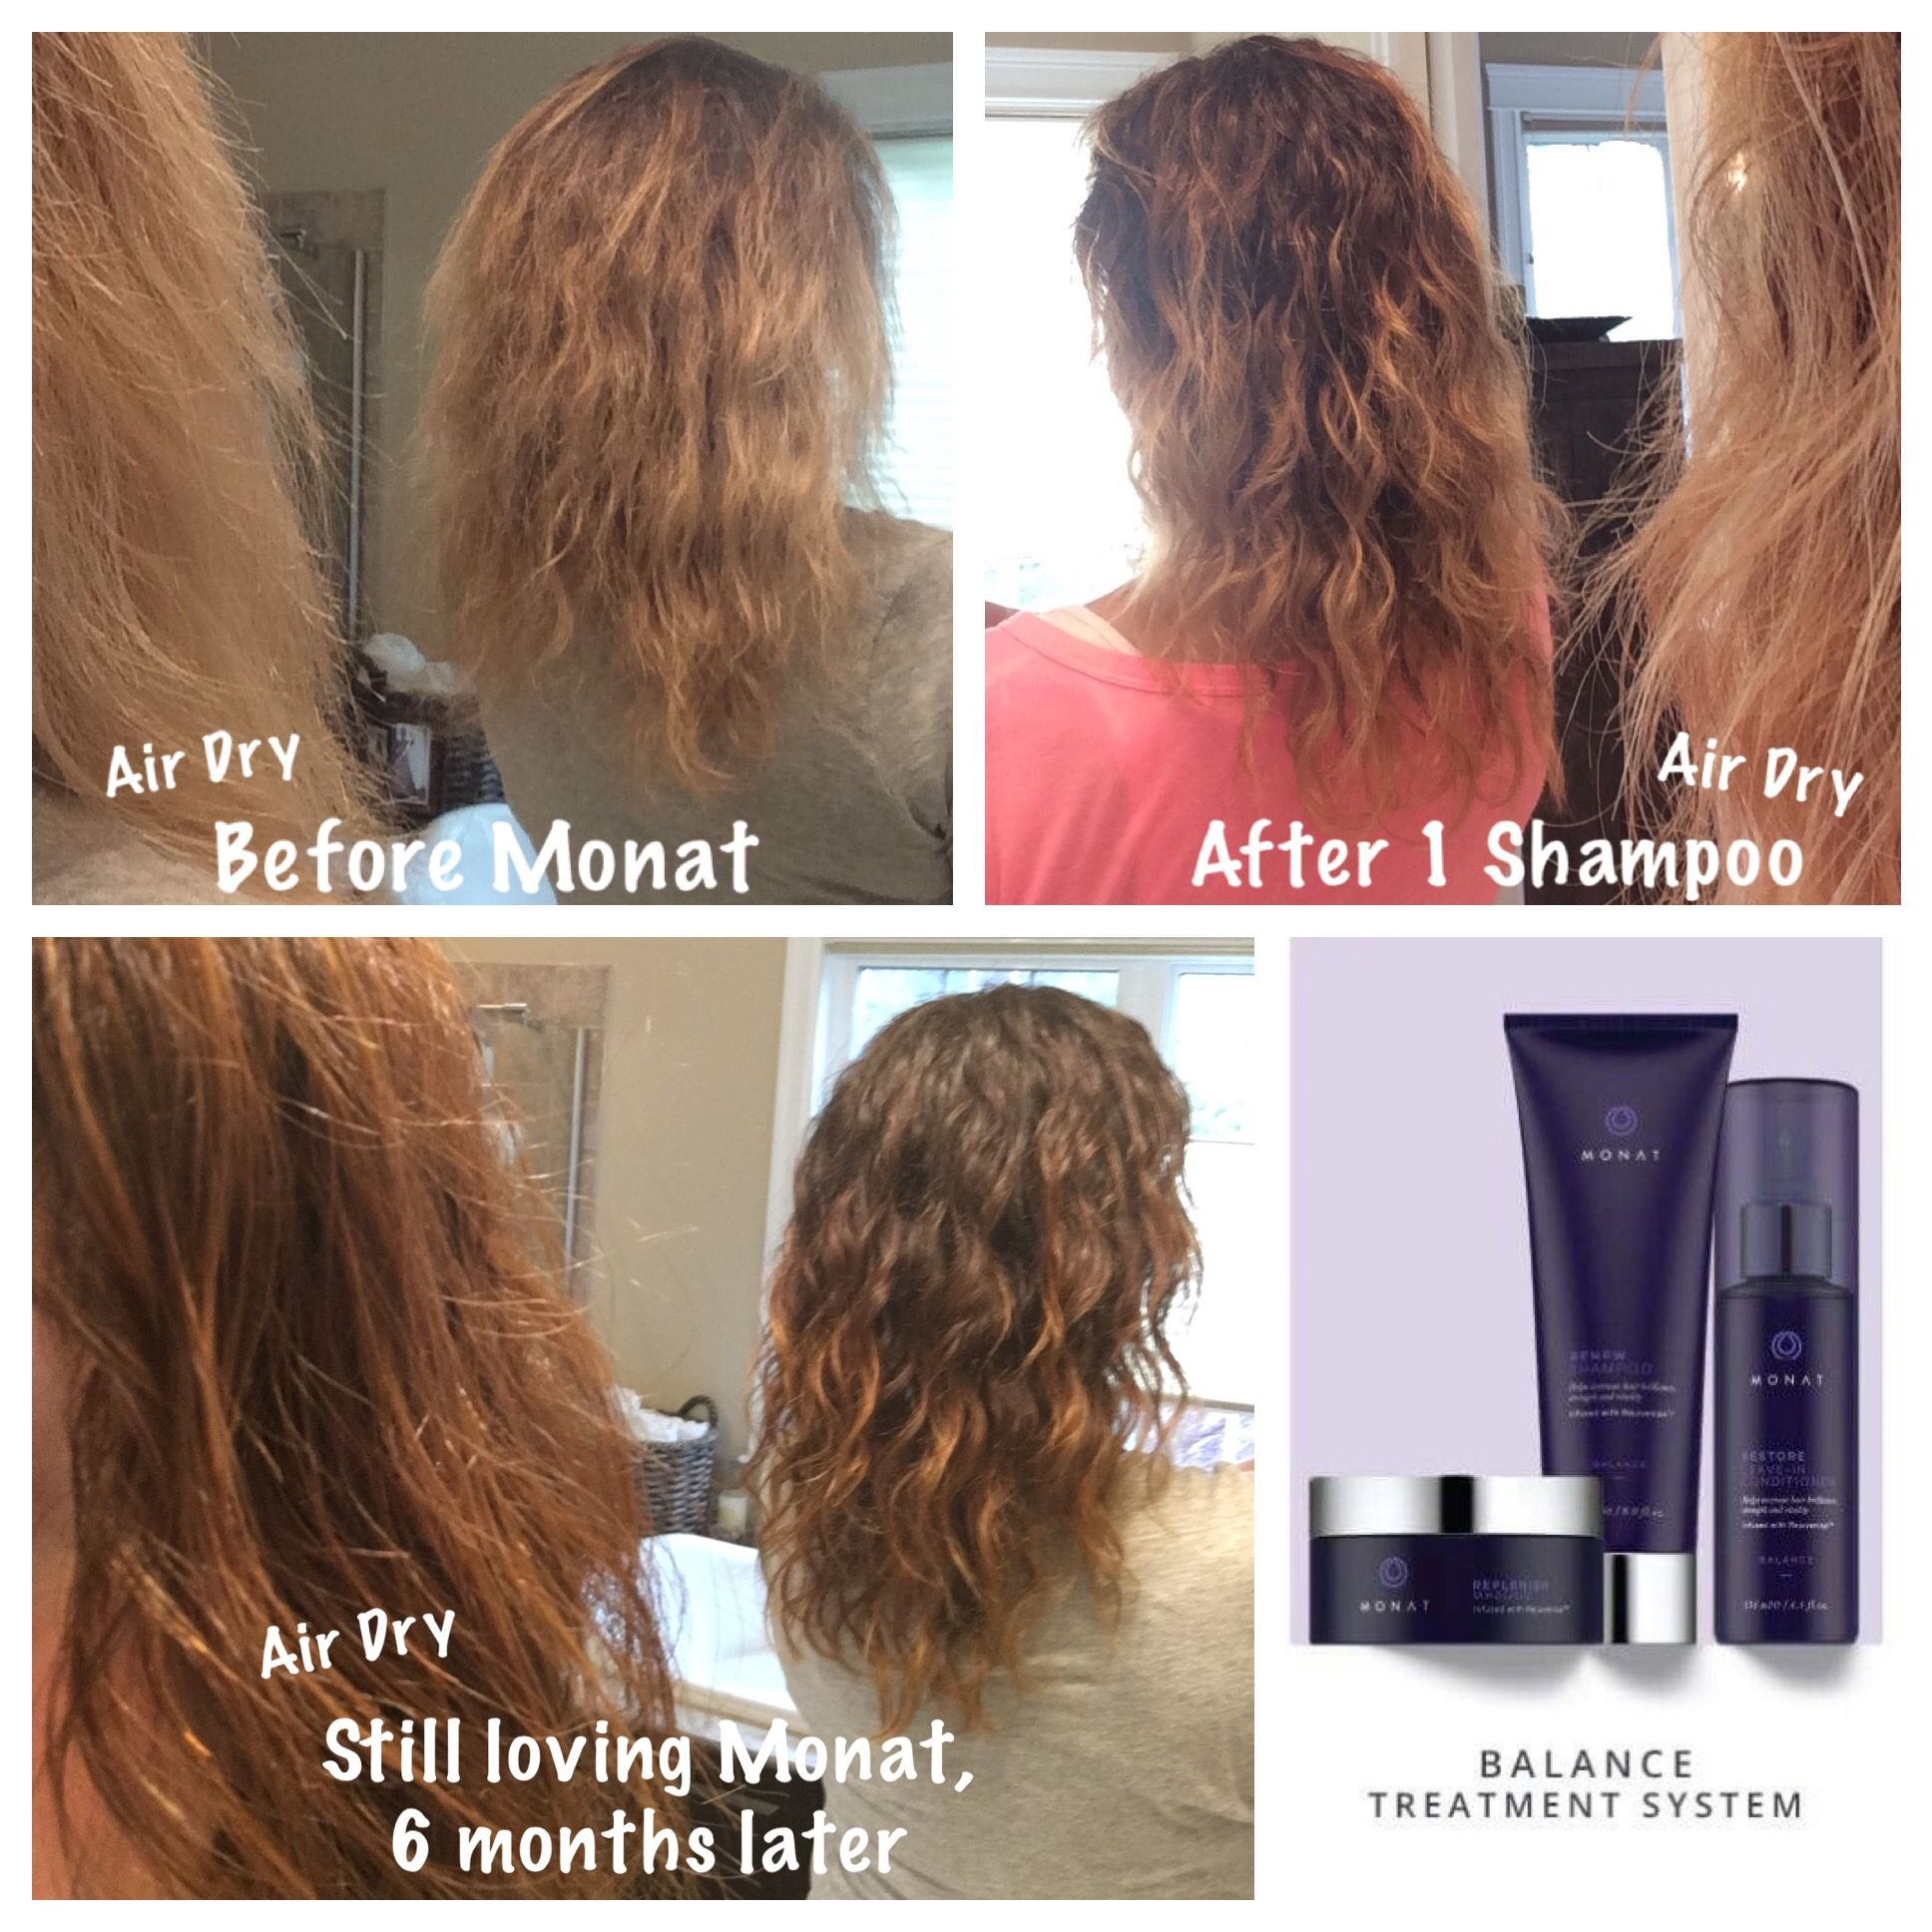 Damaged hair, breakage, dry itchy scalp, hair loss. These are my ...